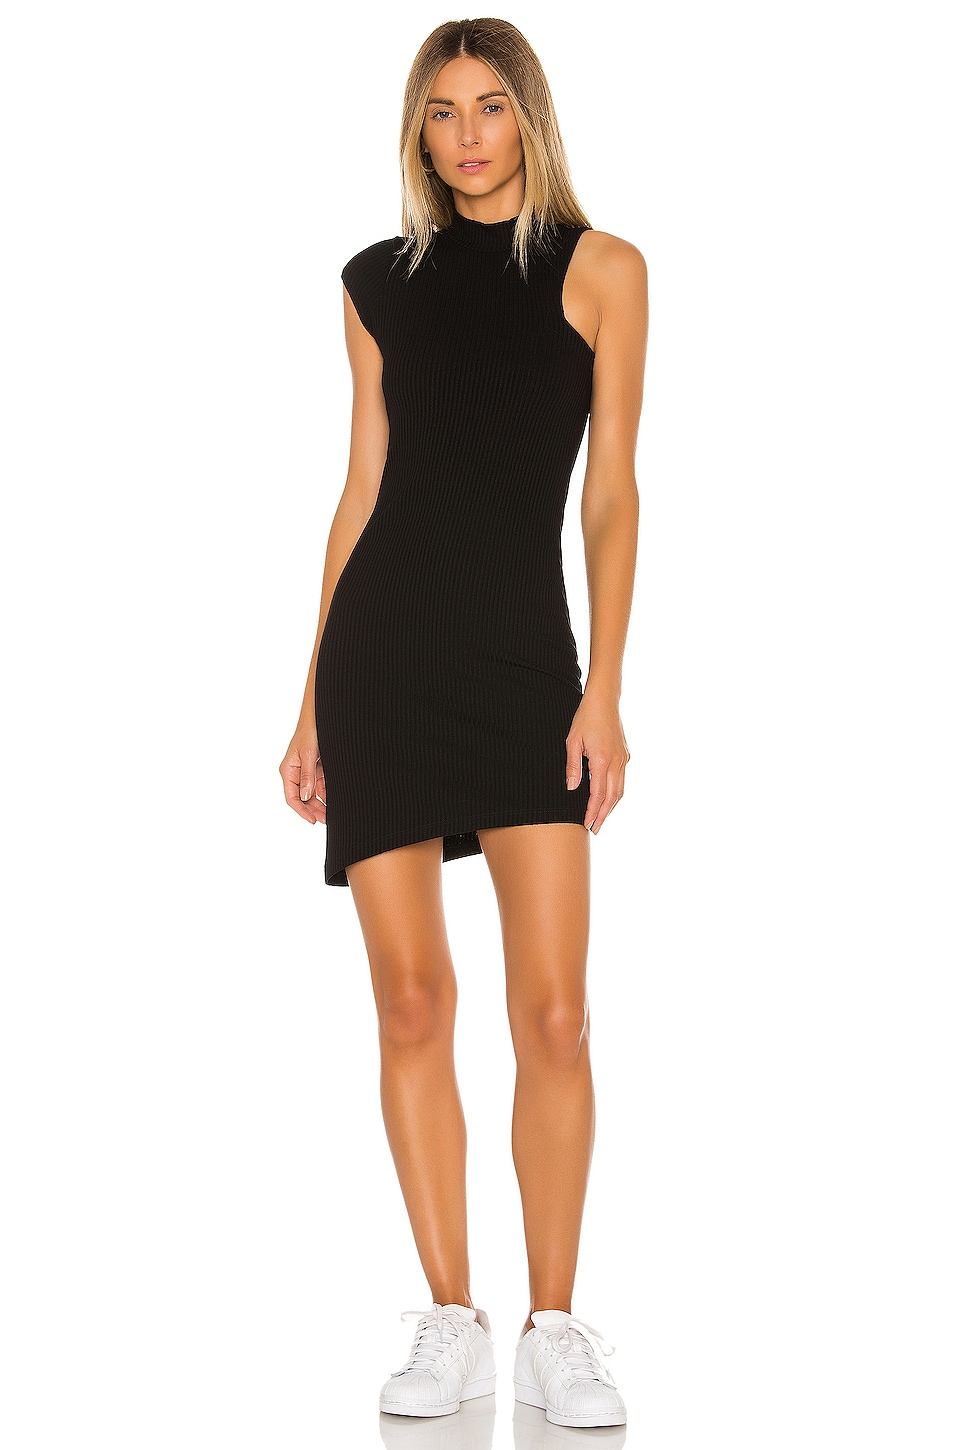 LNA Peak Rib Dress in Black